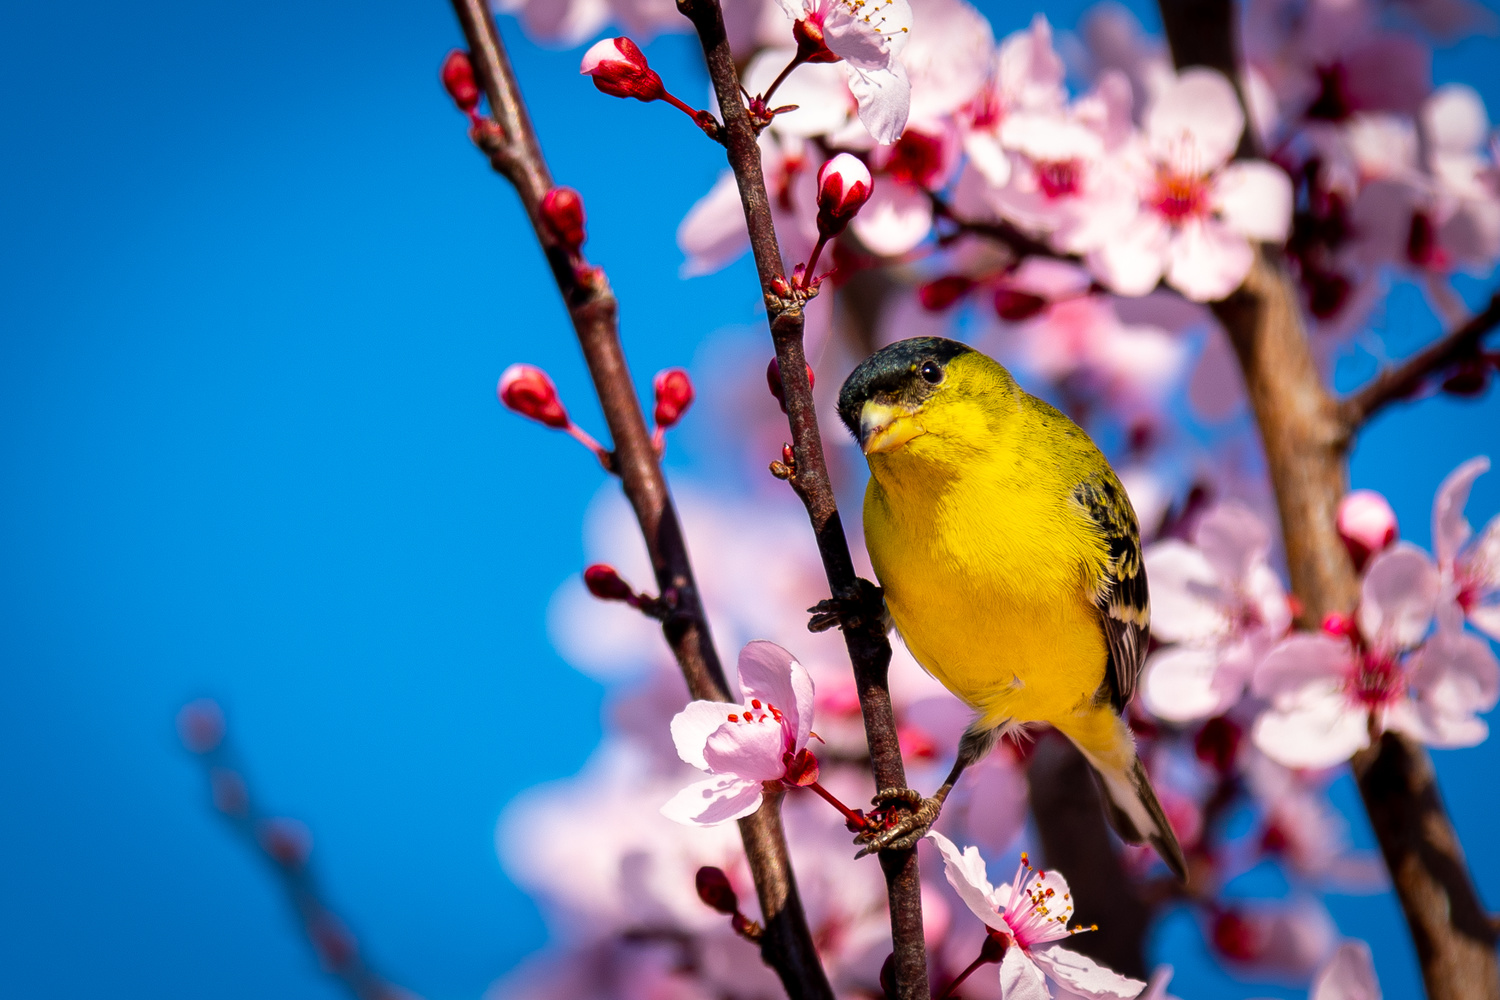 Blossm Finch by Jacob Pelley